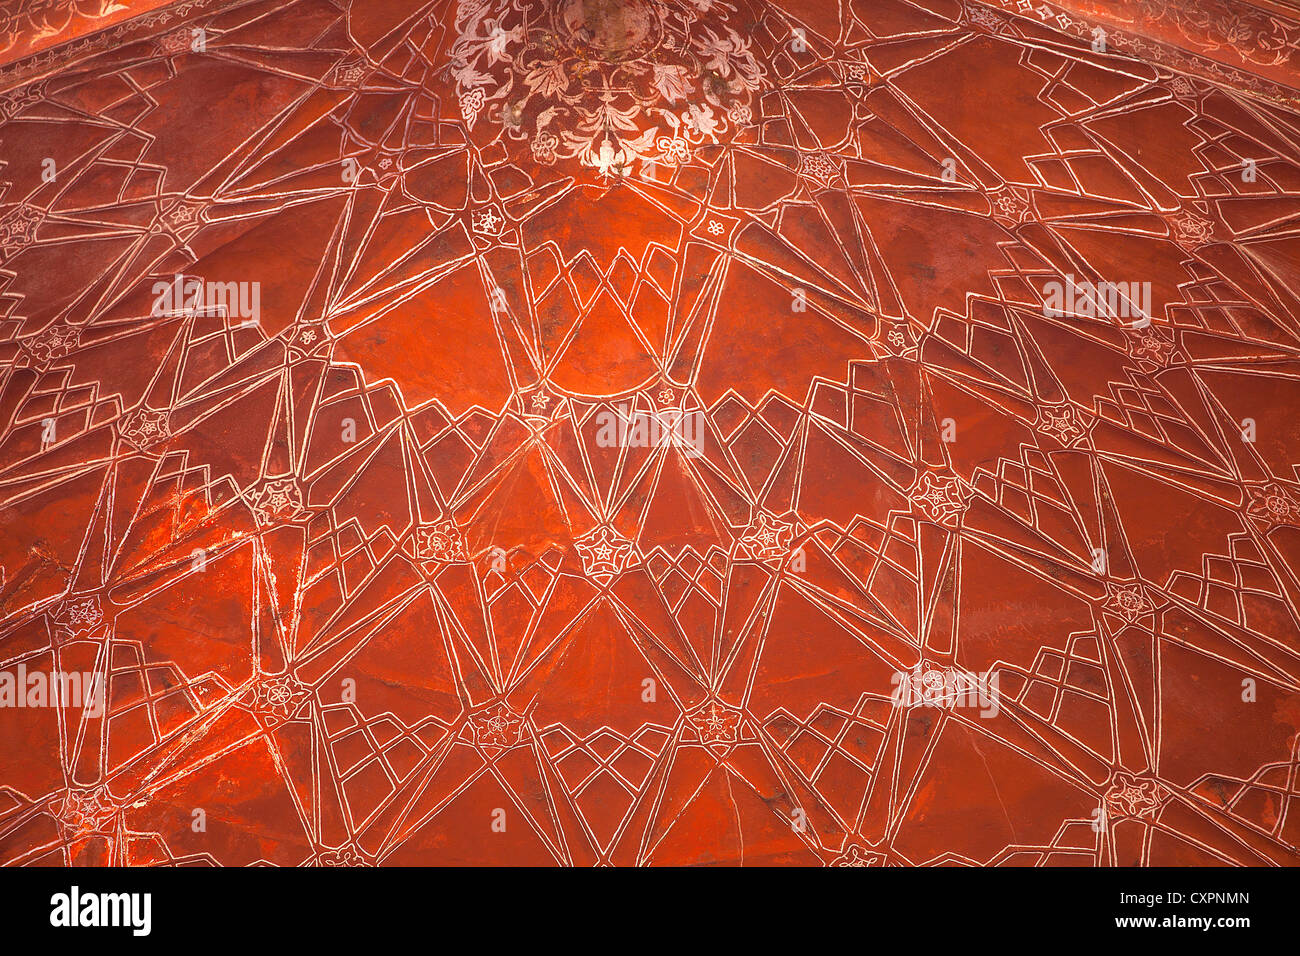 Ceiling of the Mosque at the Taj Mahal, Agra, India - Stock Image